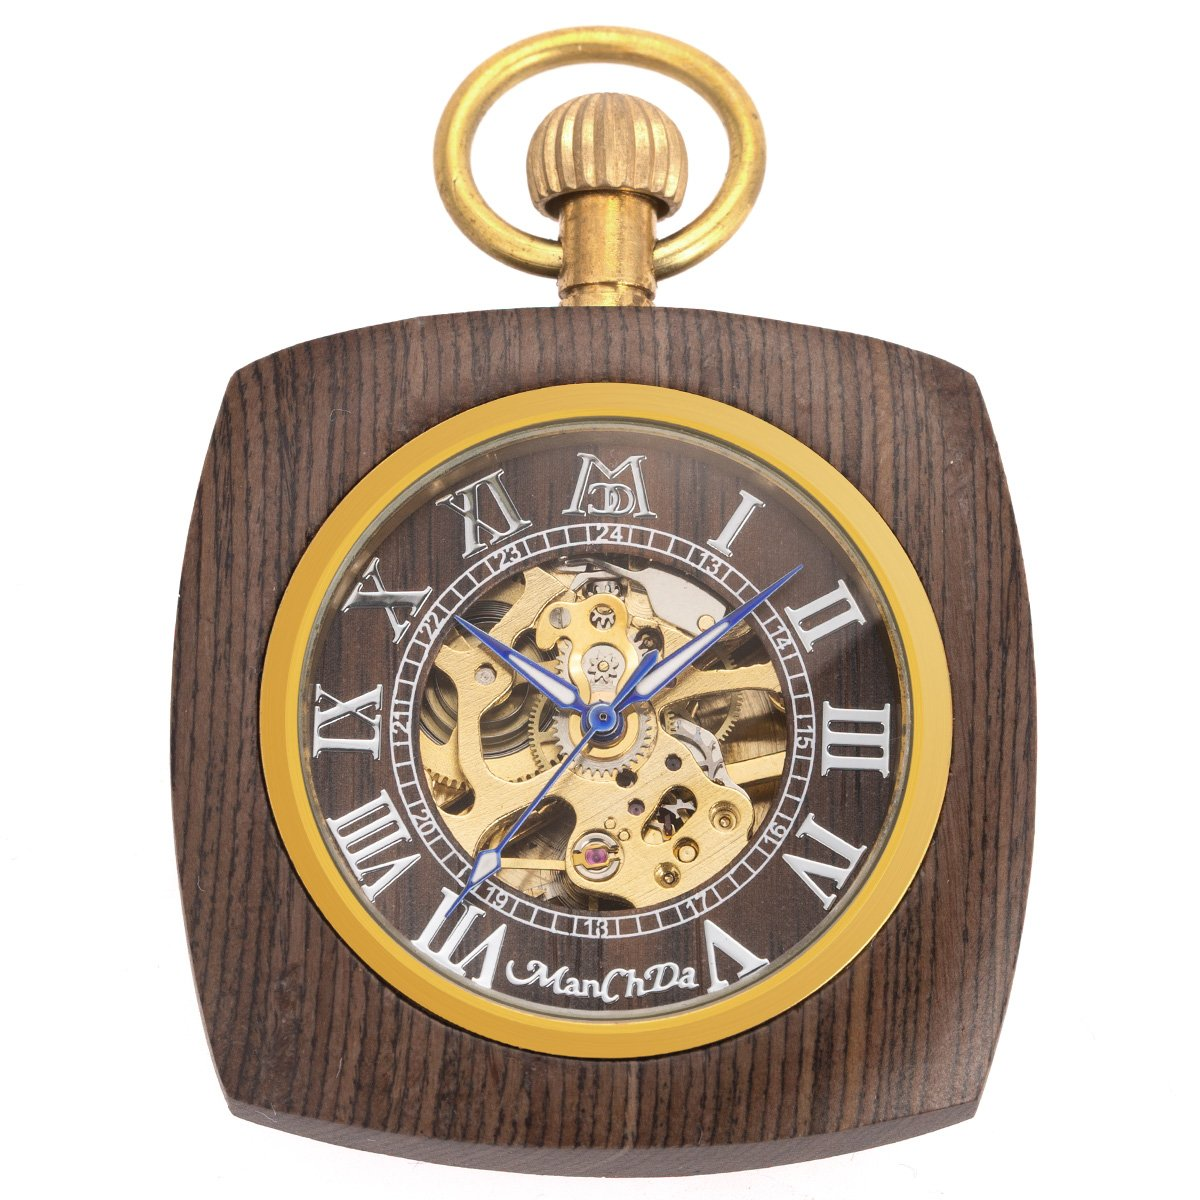 ManChDa Roman Copper Wooden Steampunk Mechanical Skeleton Pocket Watch With Chain Gift Box (5.Square Shape Roman Copper Black Wooden)